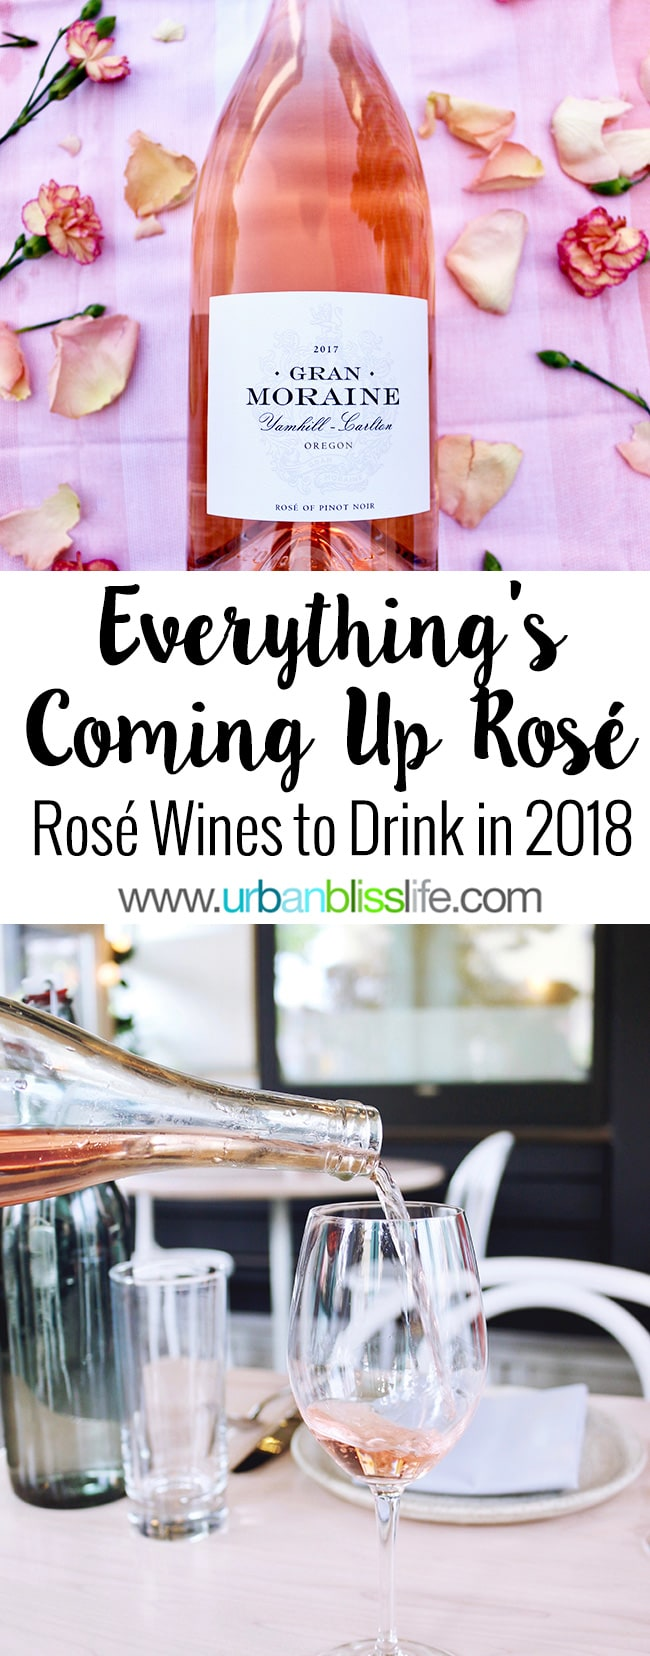 Rosé wines to drink in 2018, on UrbanBlissLife.com